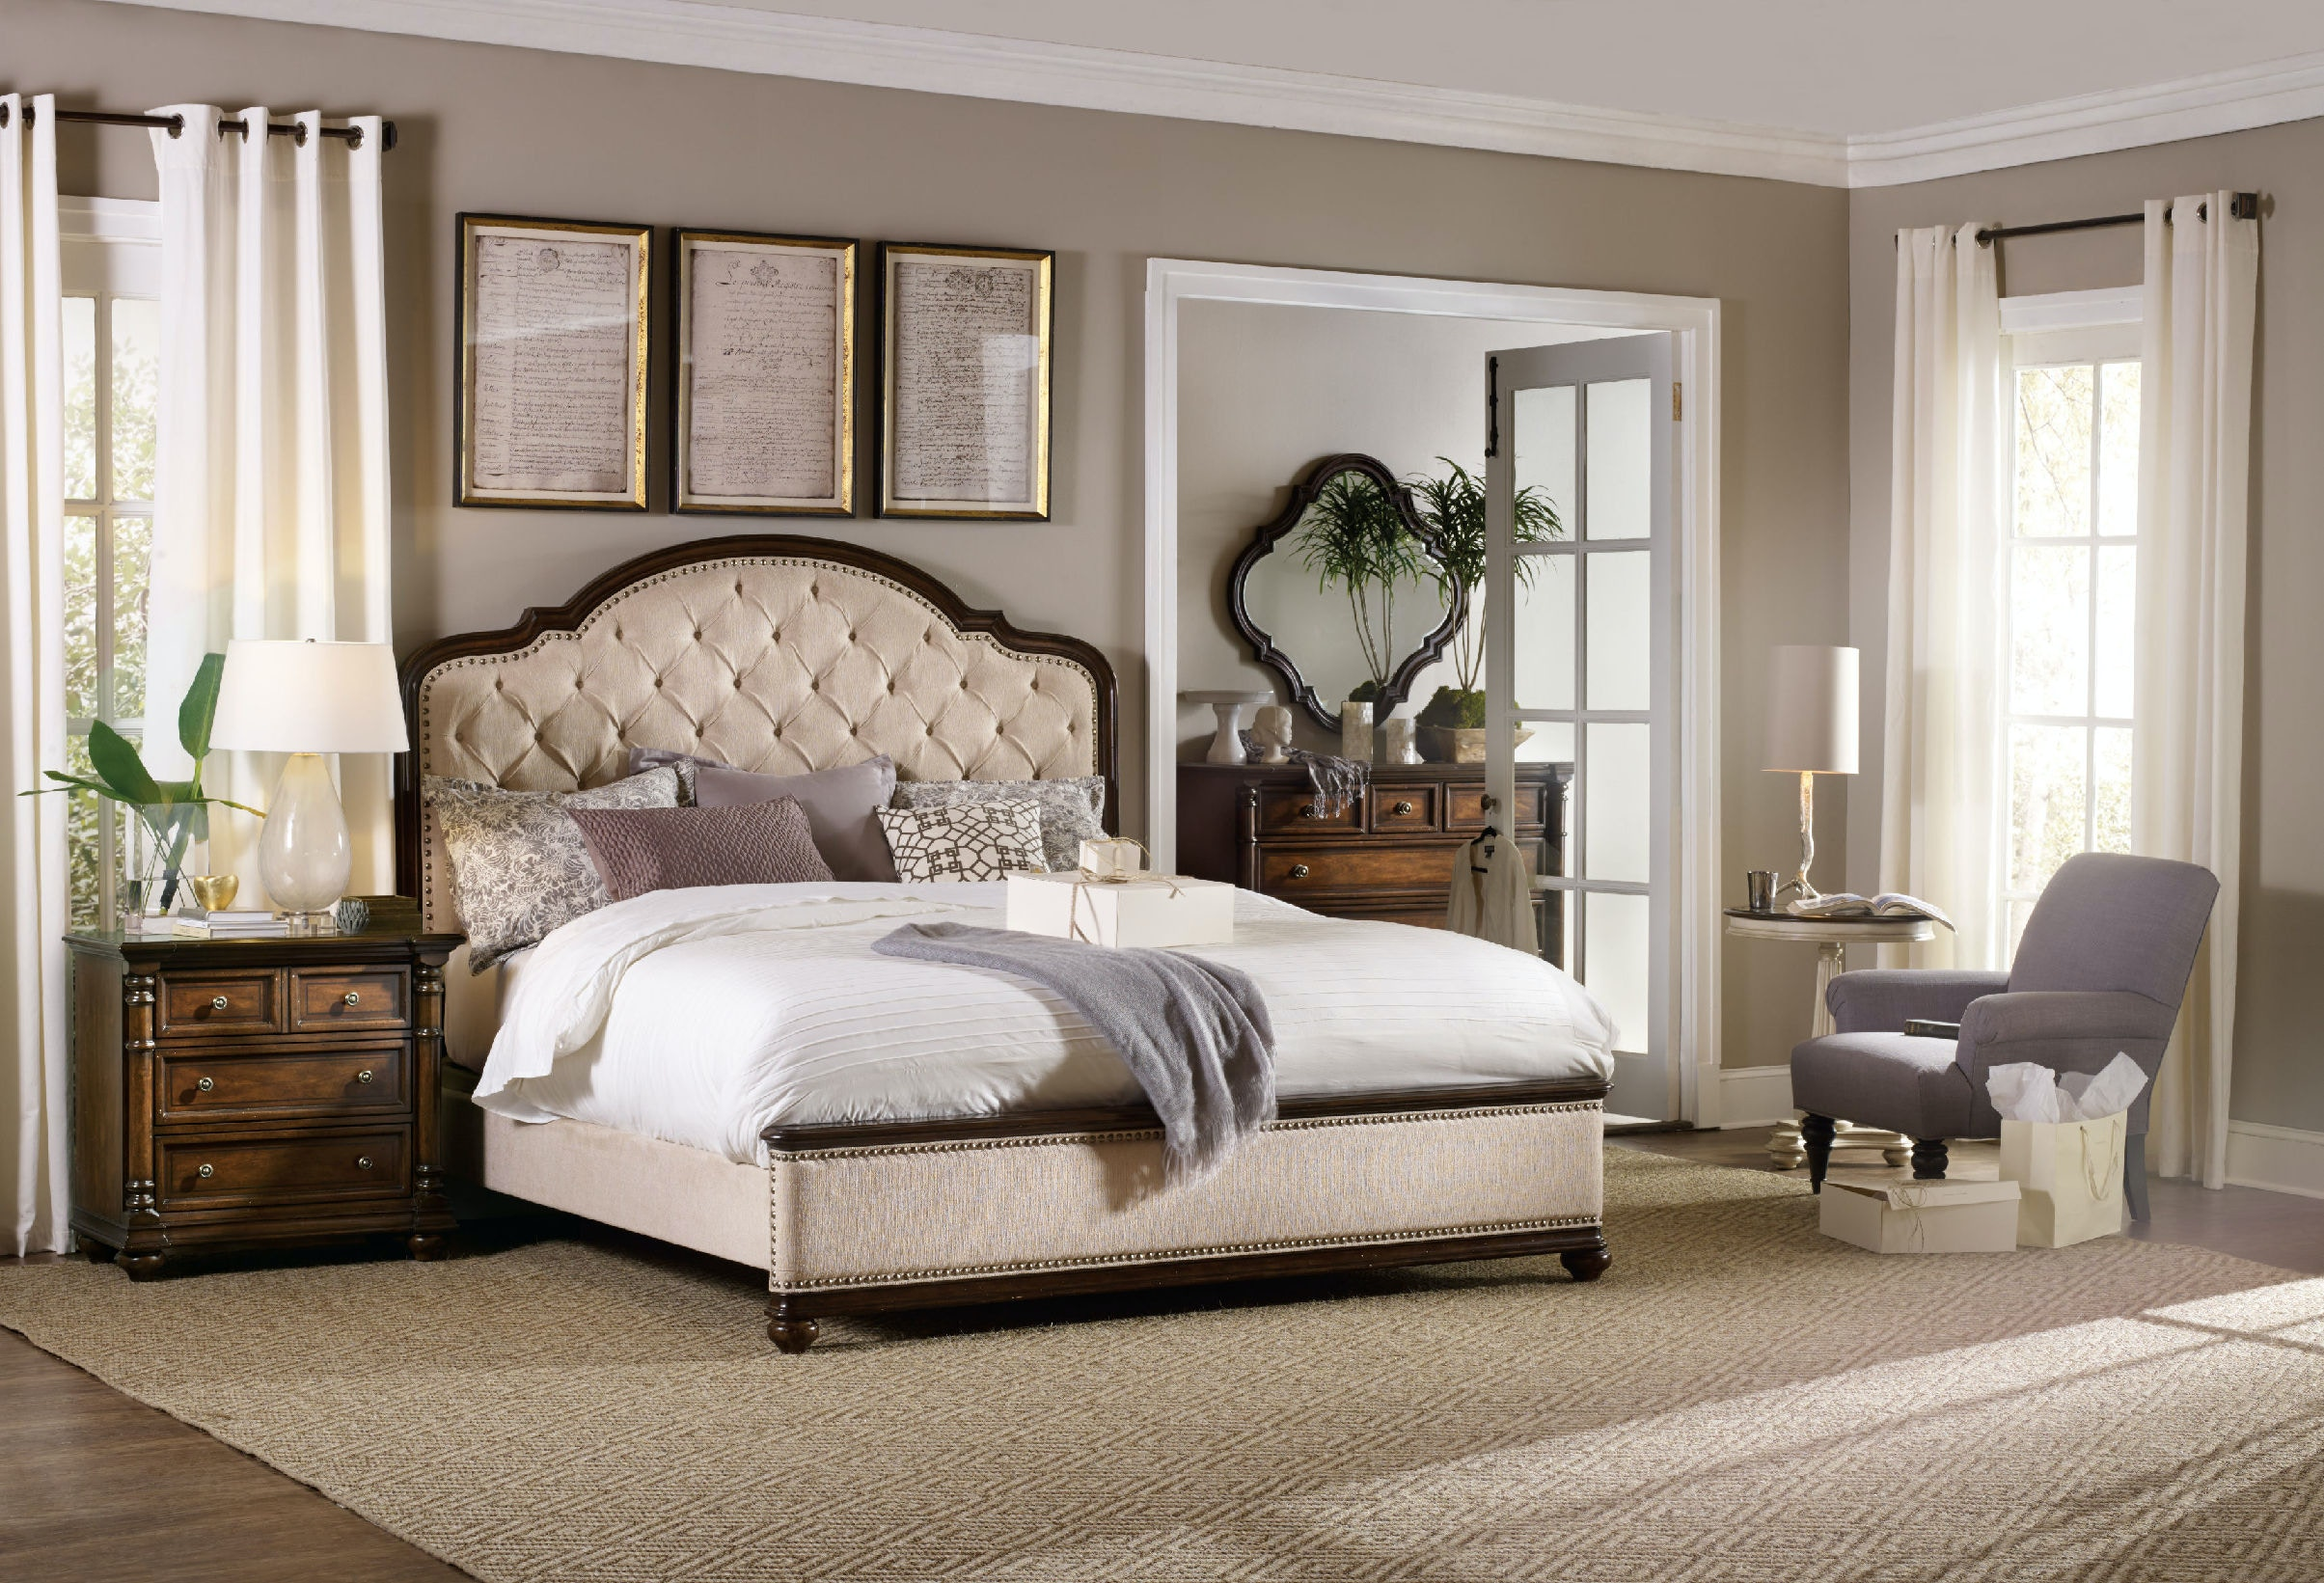 Hooker Furniture Bedroom Leesburg Queen Upholstered Bed 5381 90850 White House Designs For Life